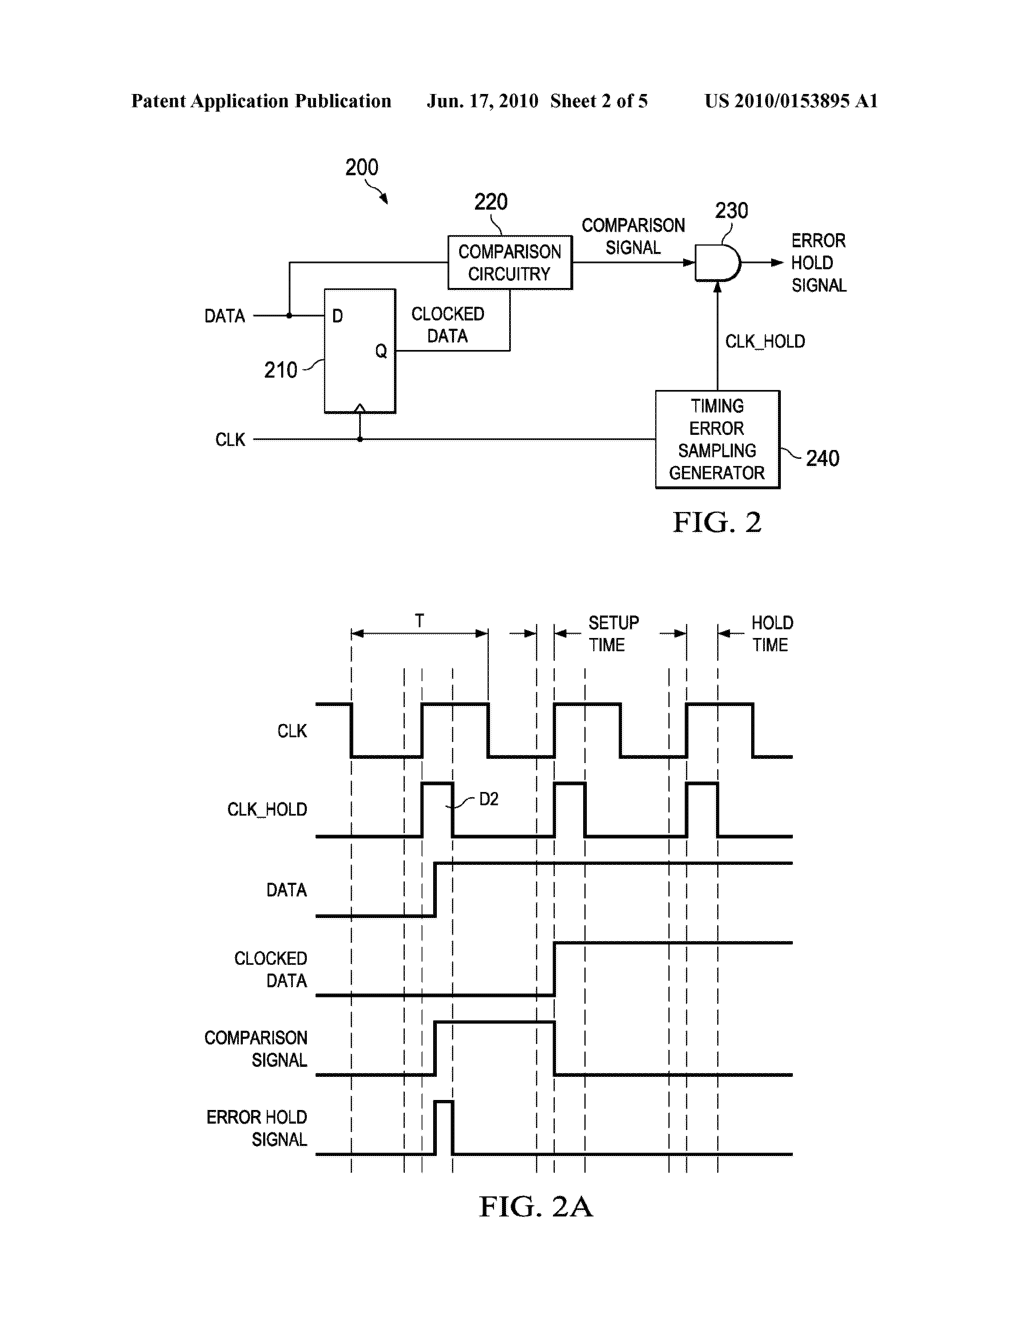 Timing error sampling generator critical path monitor for hold timing error sampling generator critical path monitor for hold and setup violations of an integrated circuit and a method of timing testing diagram pooptronica